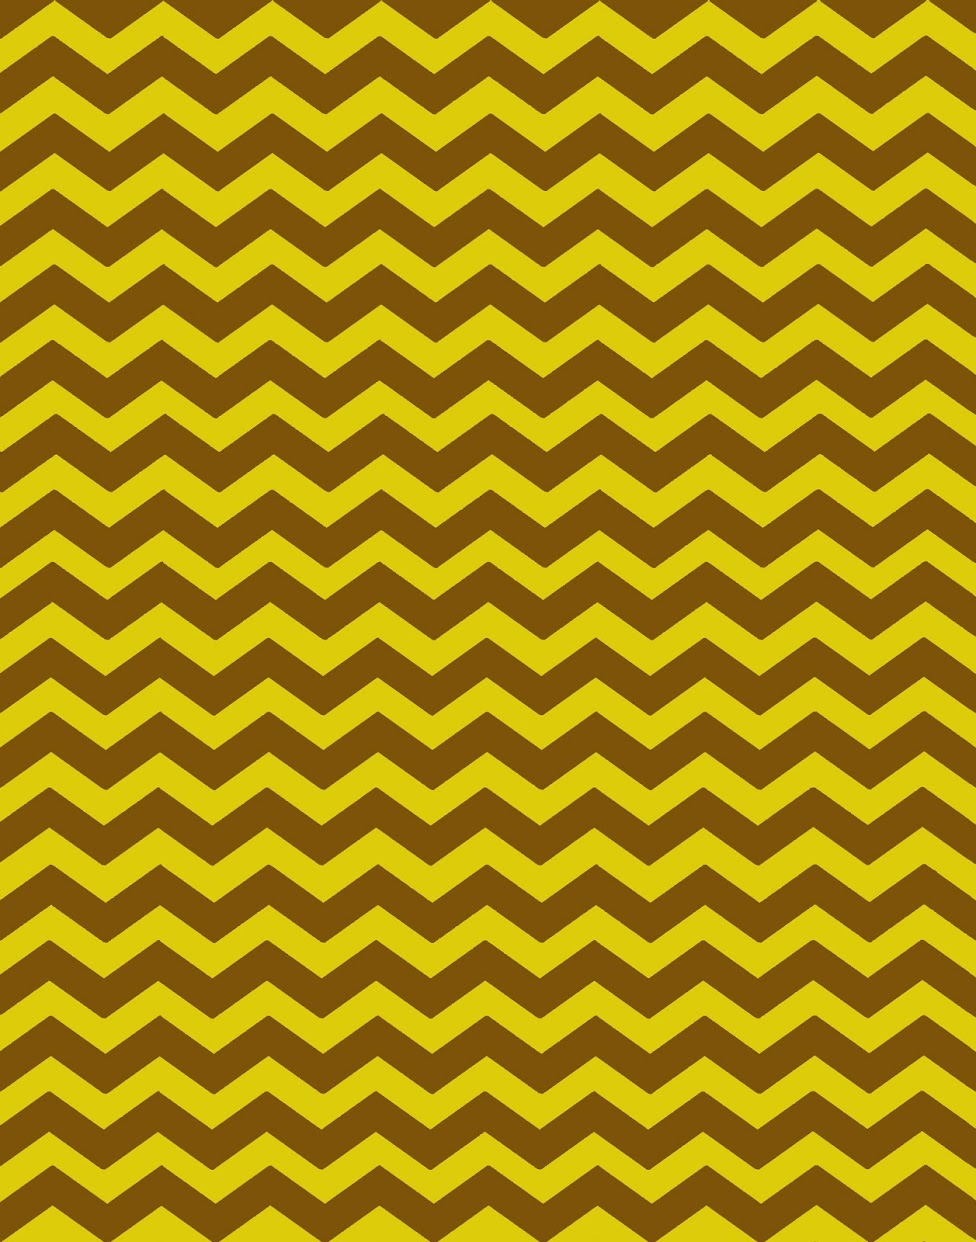 Black And Gold Chevron Wallpaper Chevron wallpaper post 3 976x1242